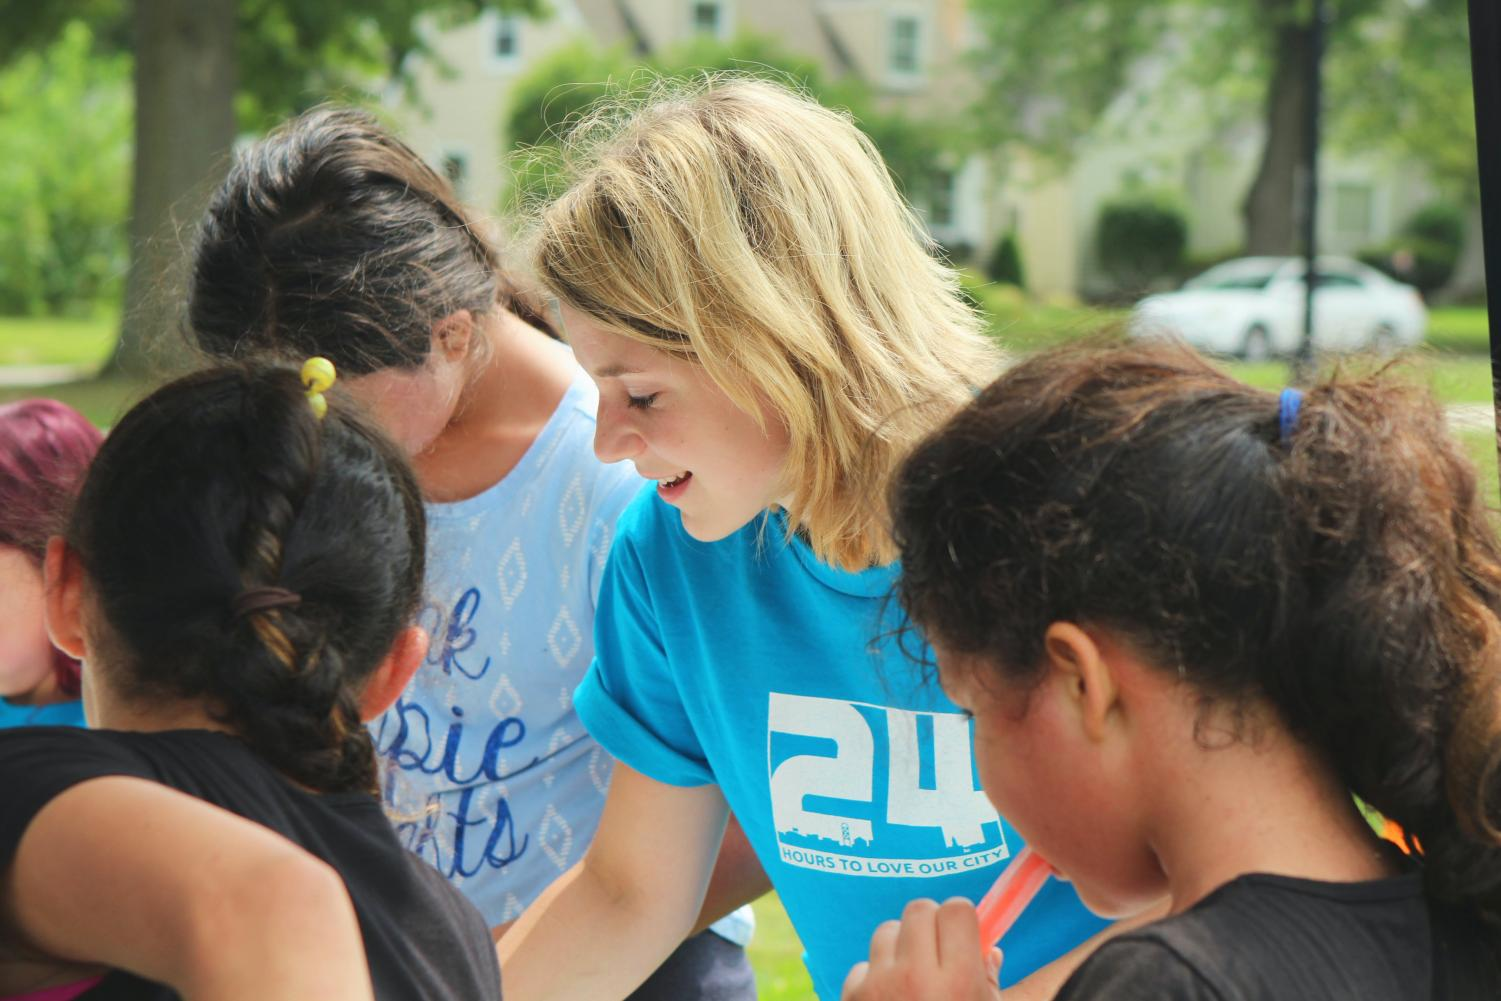 Students can volunteer to help their communities. You can earn extra credit hours and many scholarship opportunities.